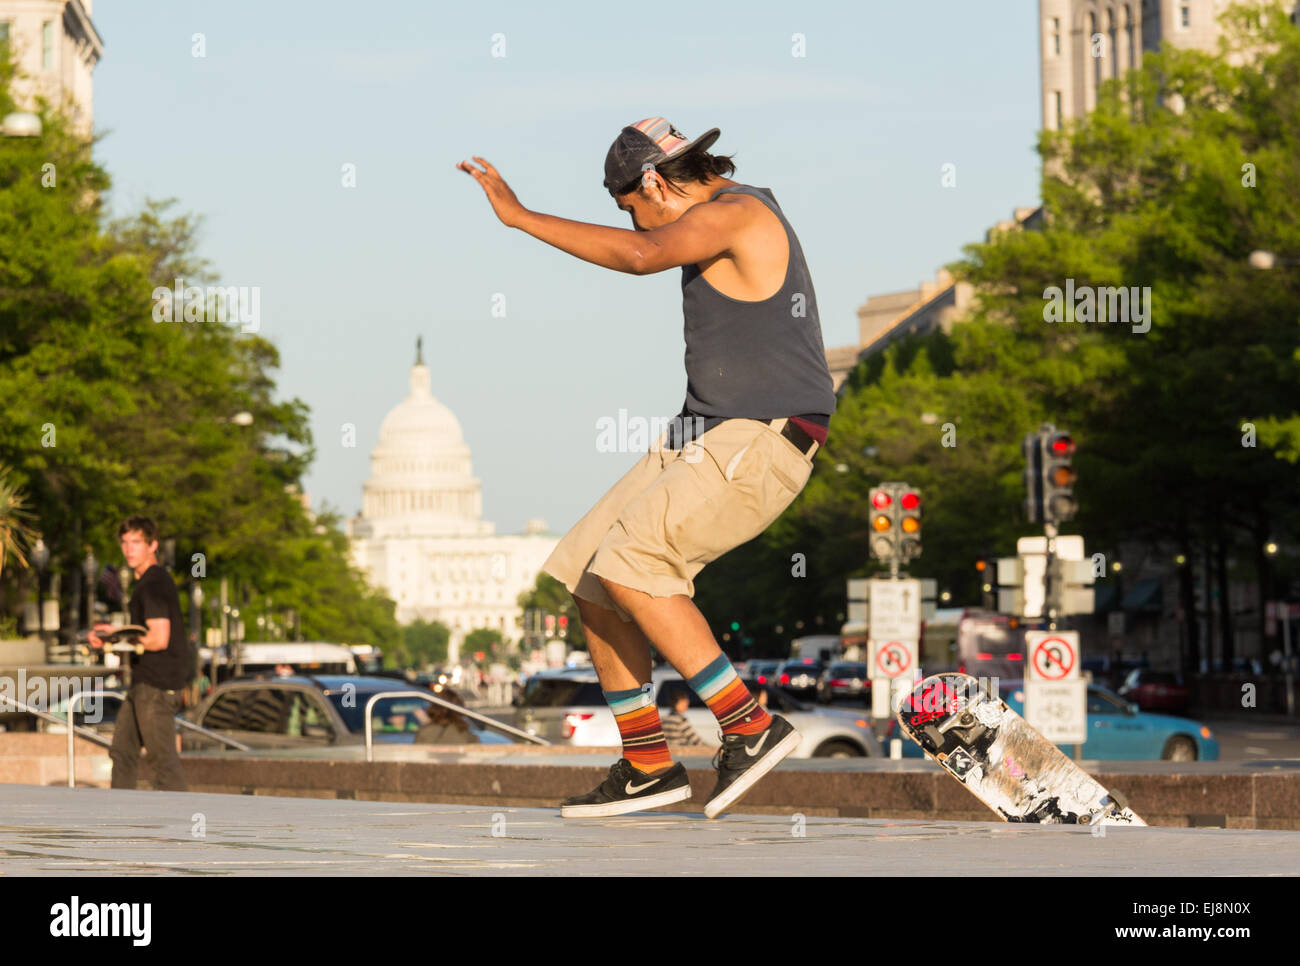 La planche sur Pennsylvania Avenue DC Photo Stock